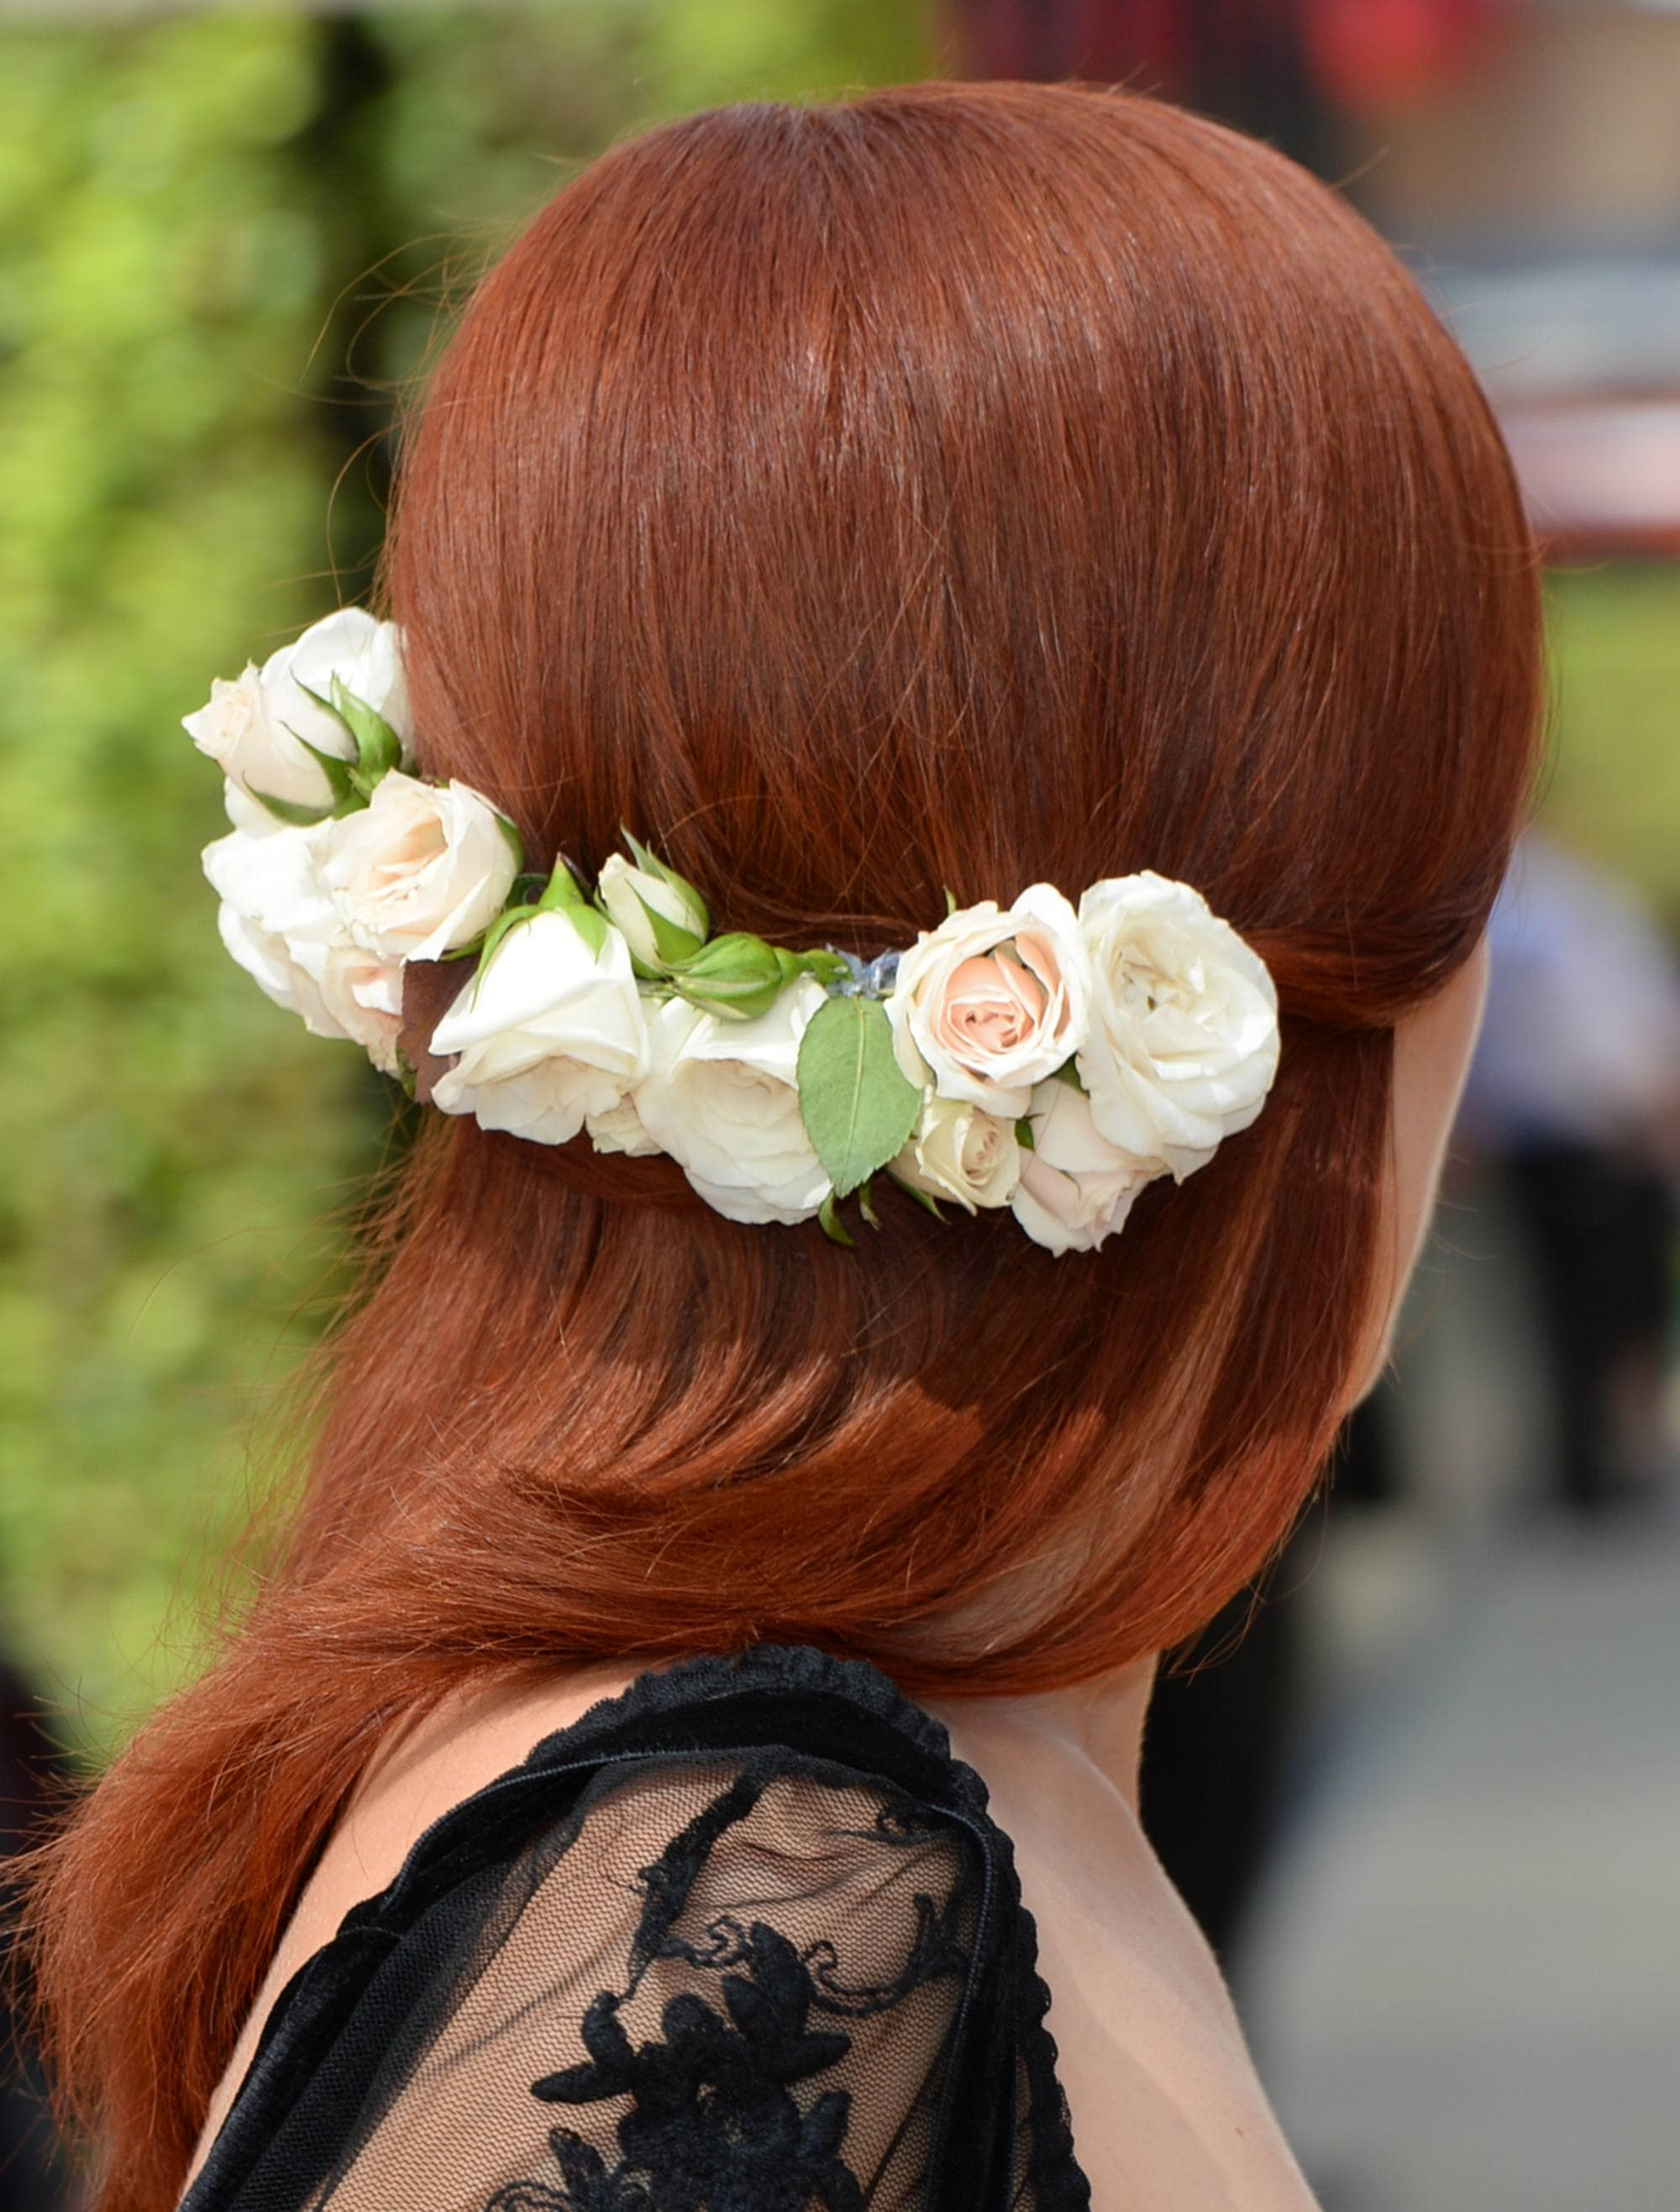 Wedding guest hair: Back shot of a woman with copper red hair styled to sleek perfection, wearing a low flower hairpin with a black netted top